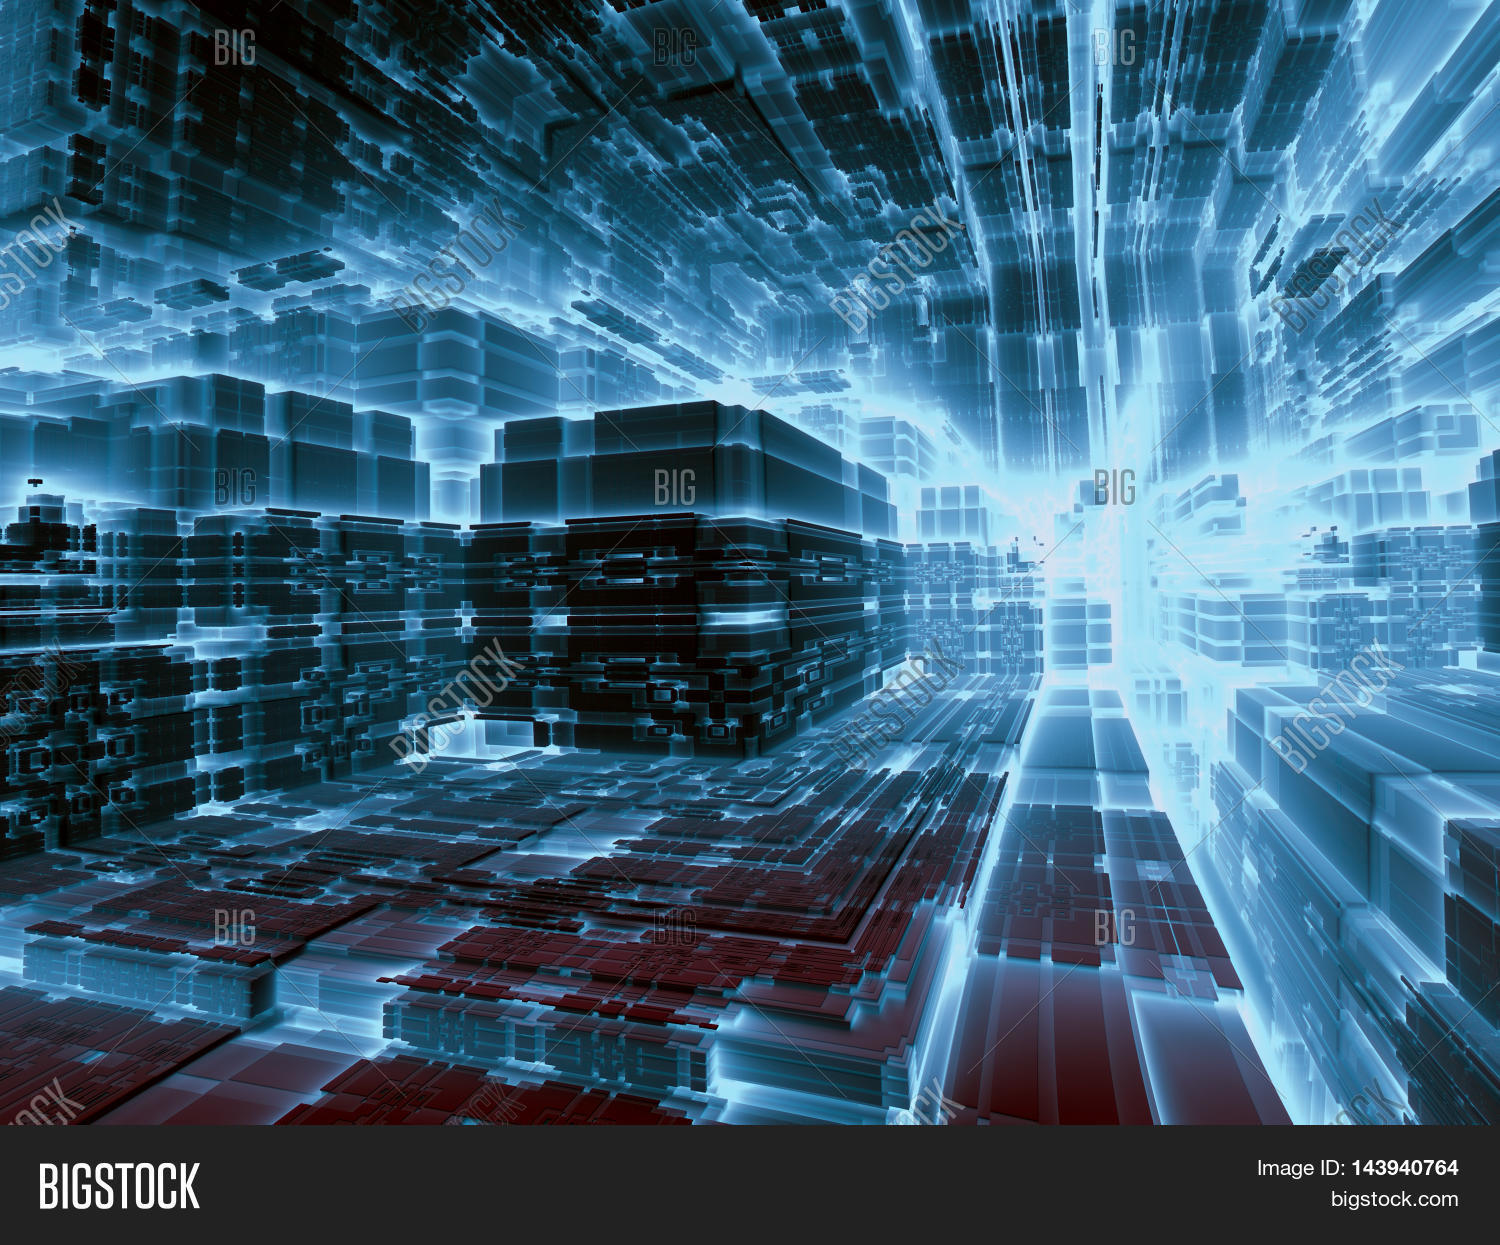 Big Data Data World Cloud 1667184 likewise 3D Organon VR Anatomy together with Waves moreover Royalty Free Stock Photography Vintage Papyrus Frame Border Abstract Background Suitable As Digitally Generated Image Image39585567 further Garrys Mod. on virtual reality illustration